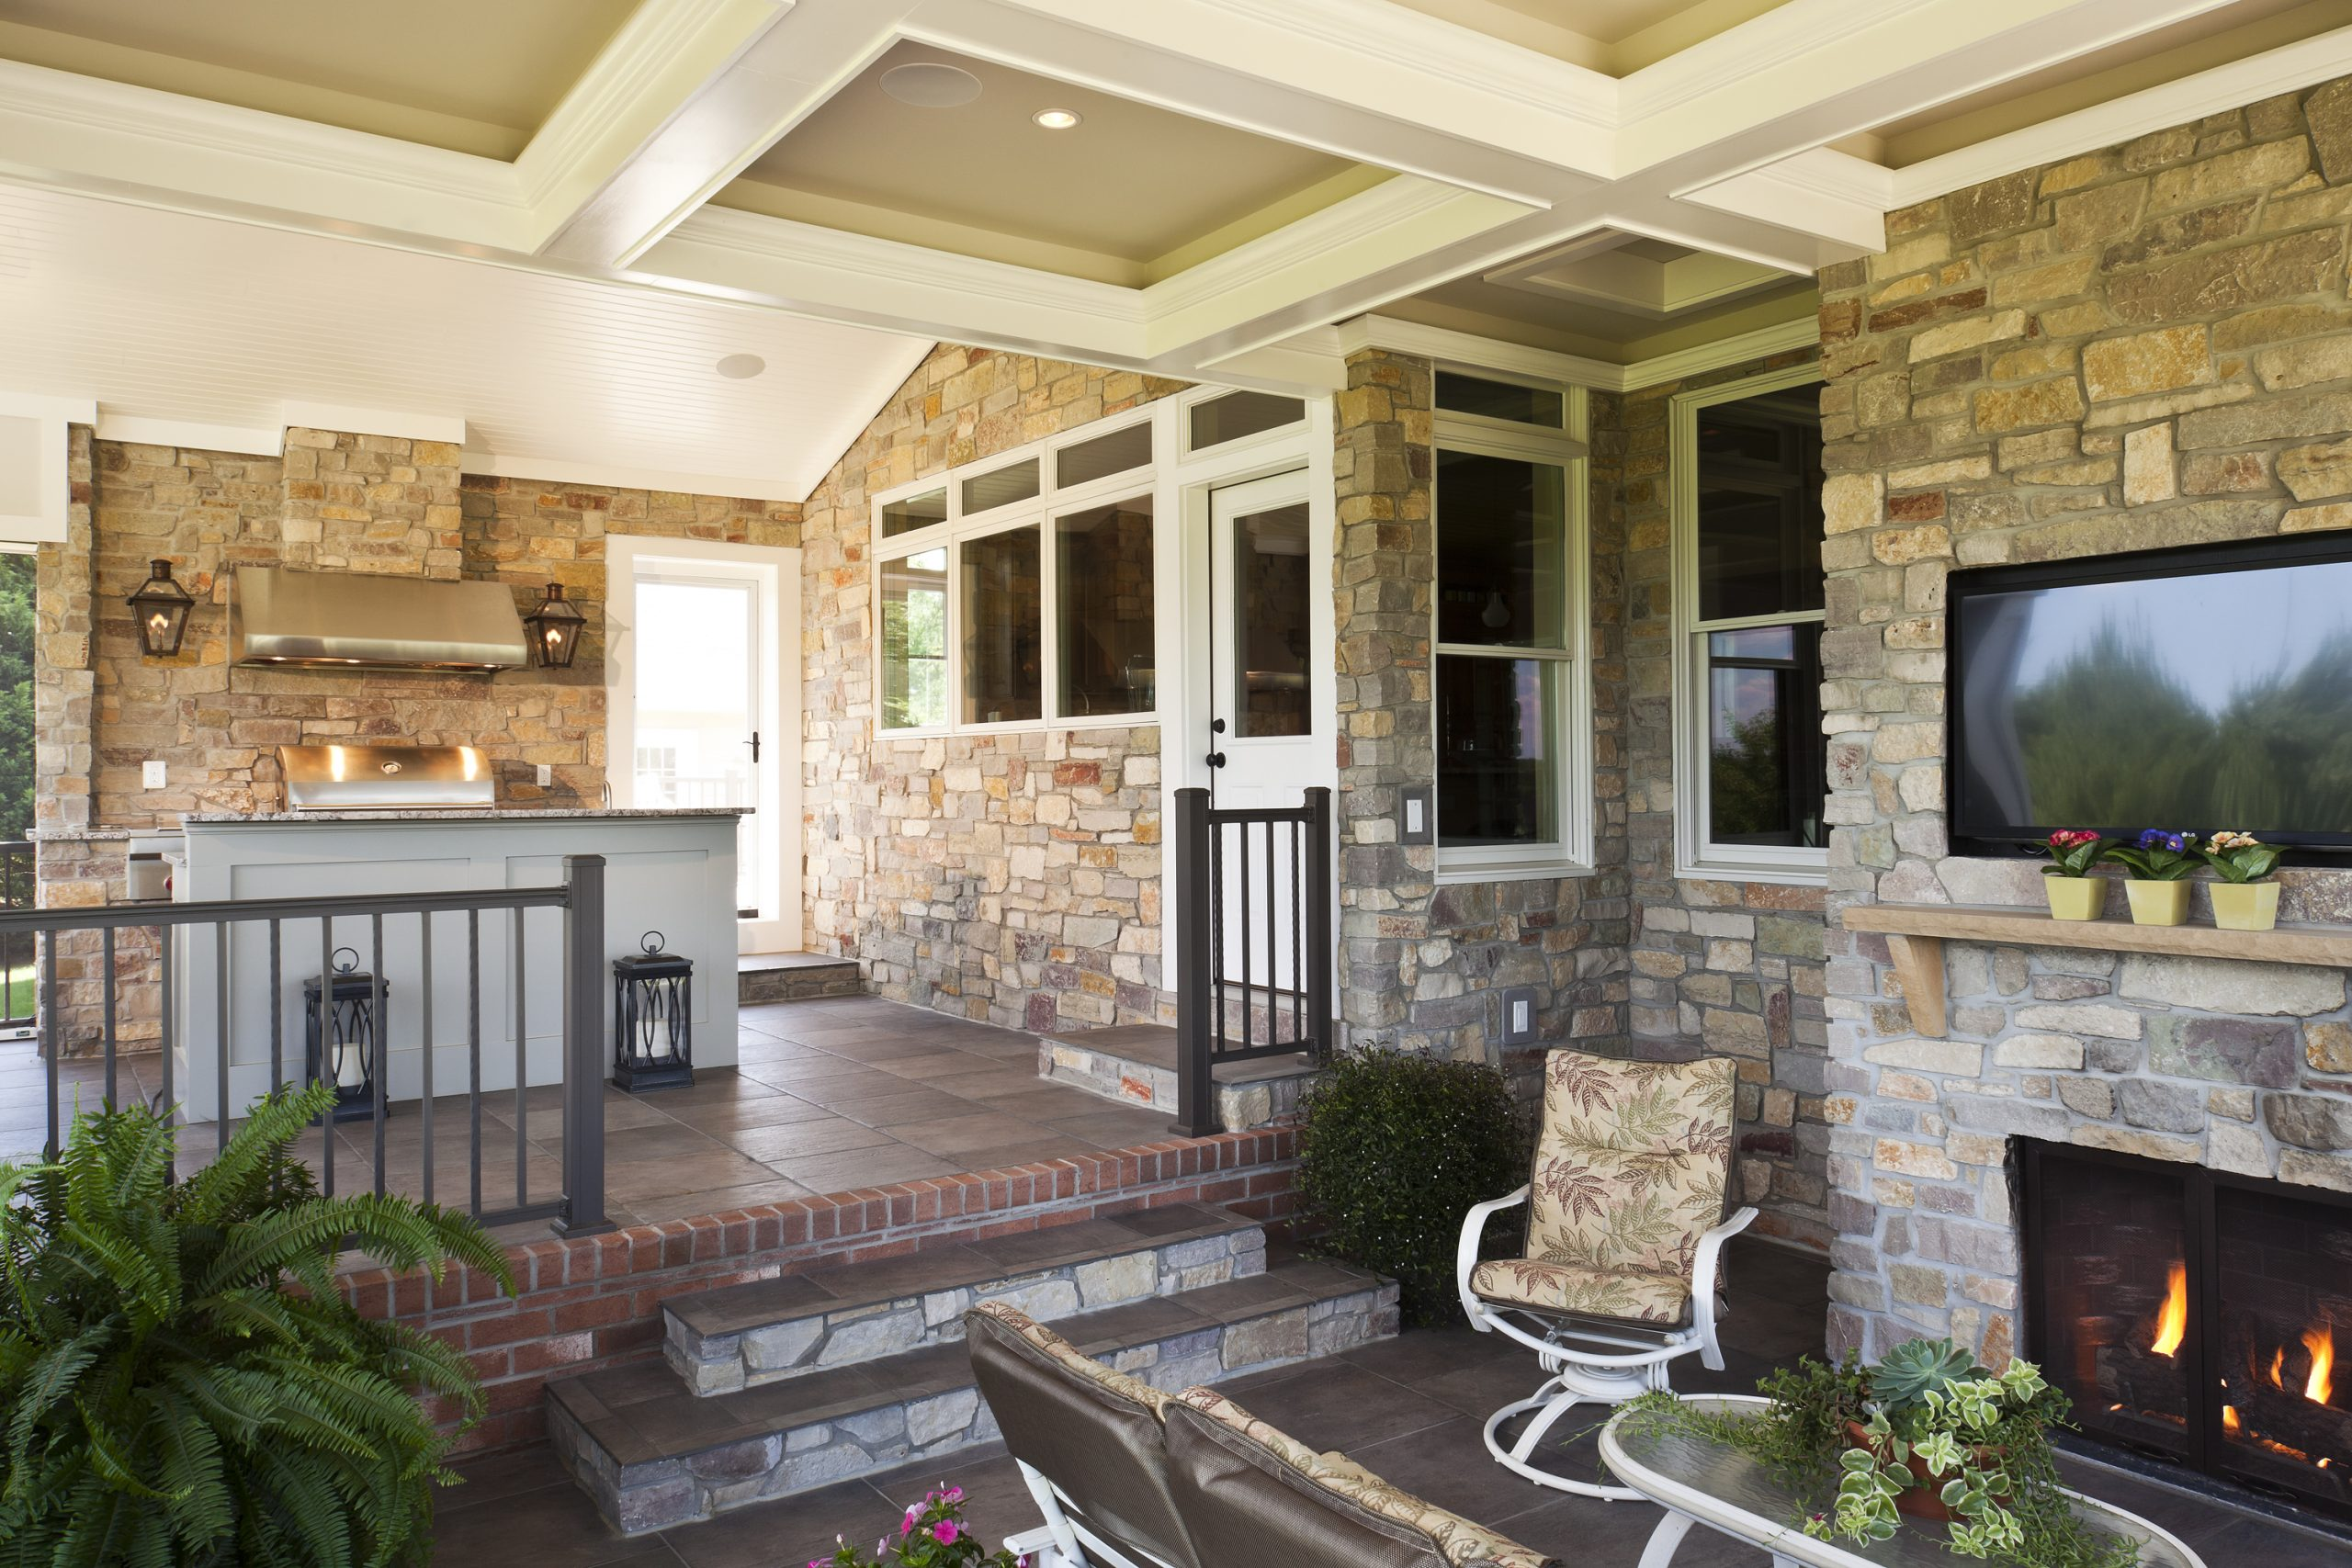 Transform Your Porch With These Ceiling Ideas Owings Brothers Contracting